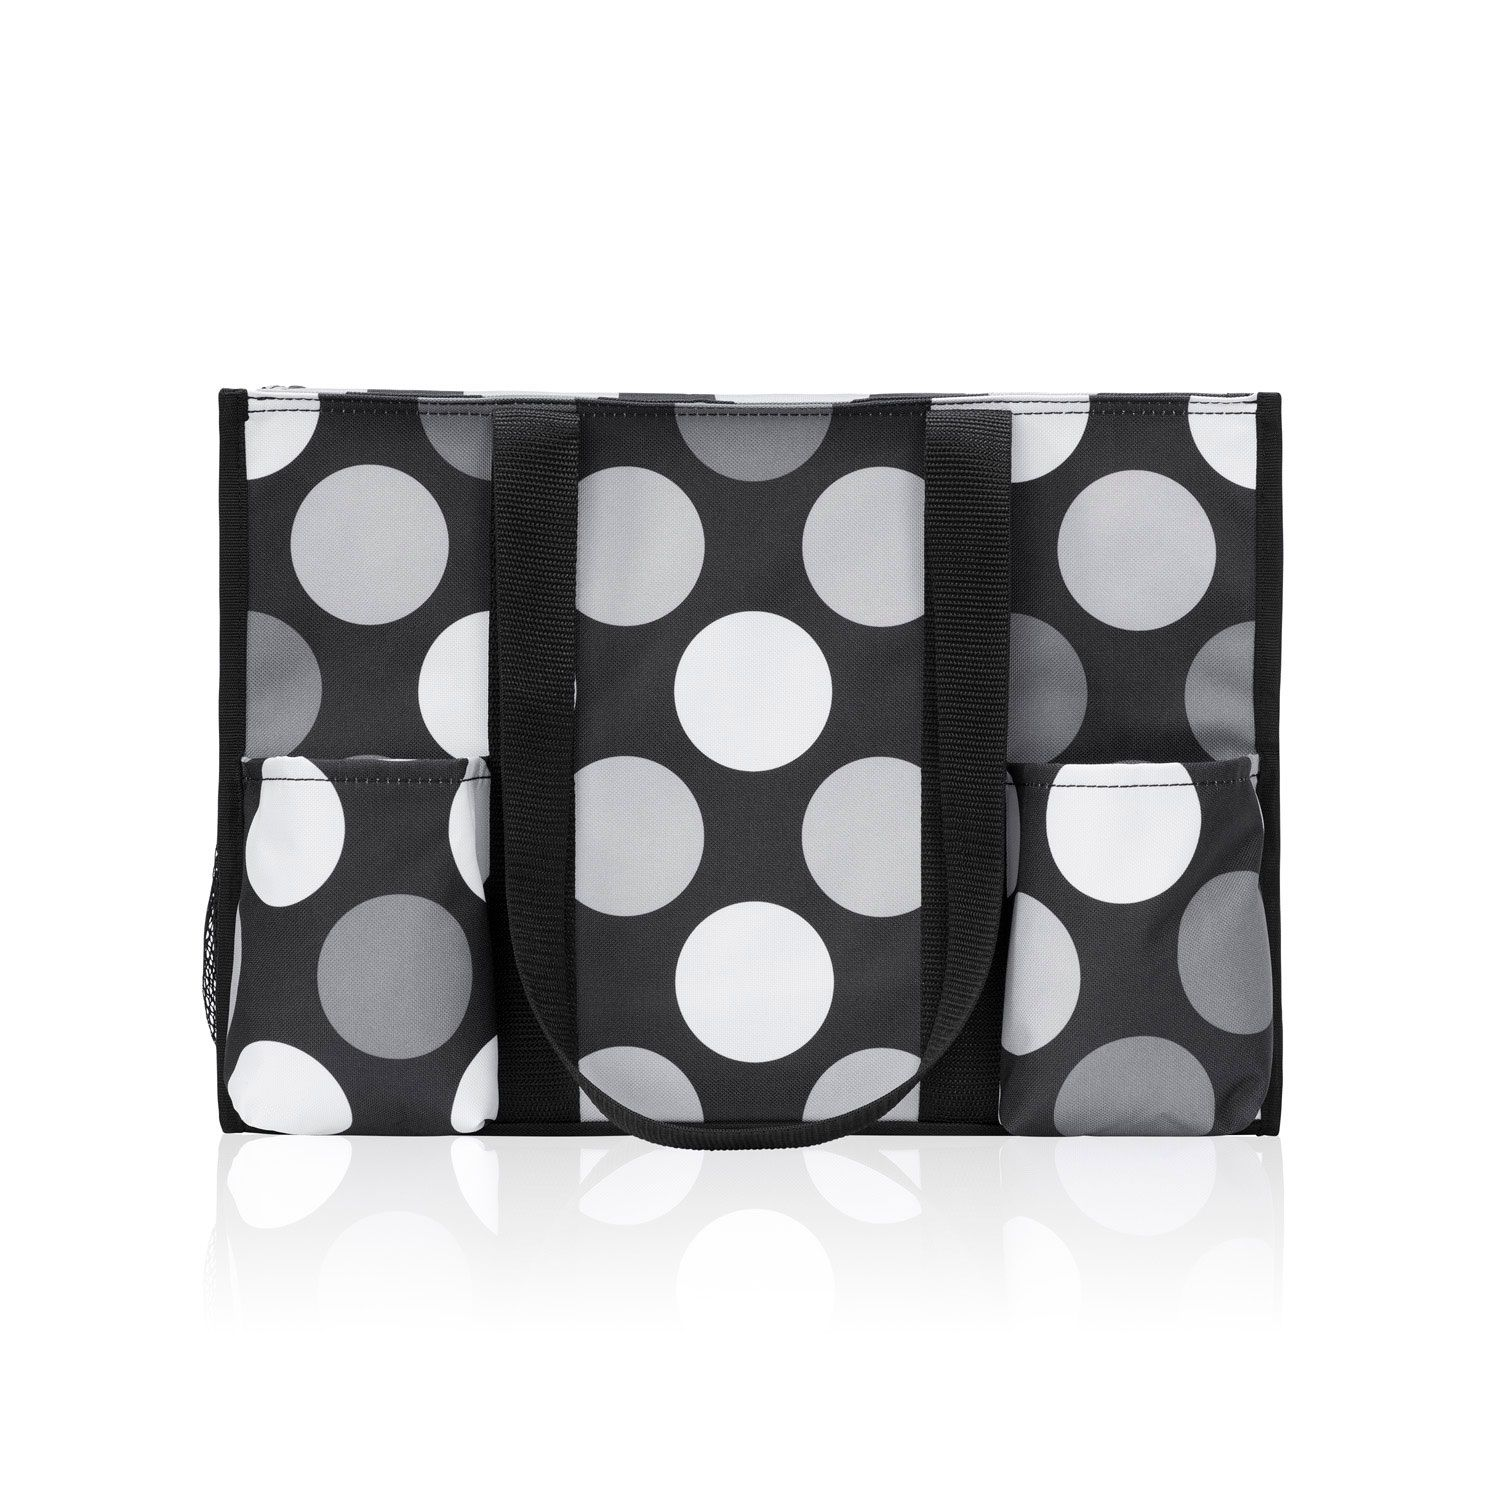 Zip Top Organizing Utility Tote Got Dots Thirty One Products